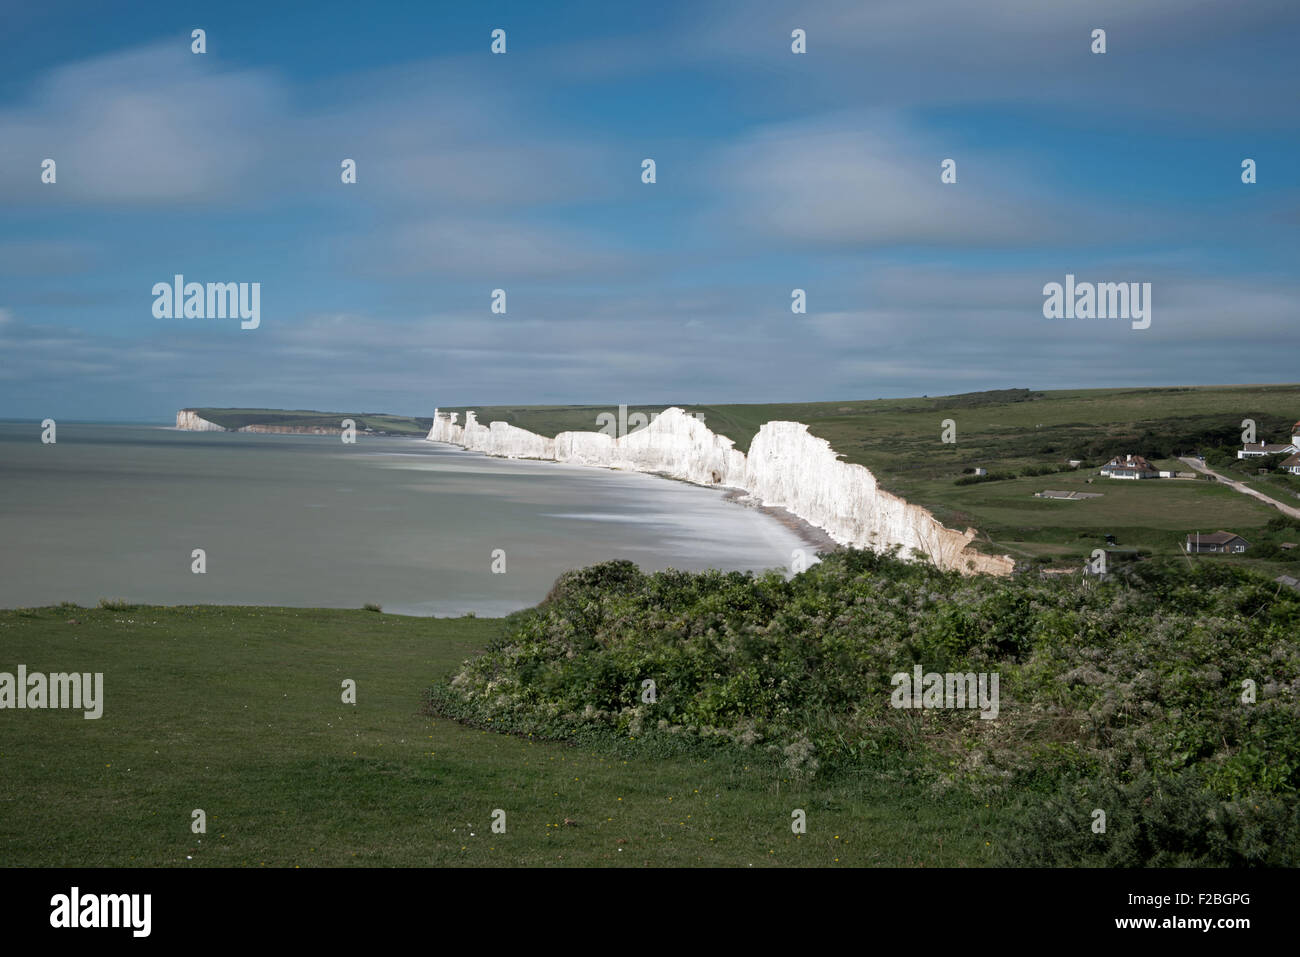 View towards The Seven Sisters Cliffs,  from  Birling Gap, South Downs National Park, East Sussex, England, Uk, - Stock Image